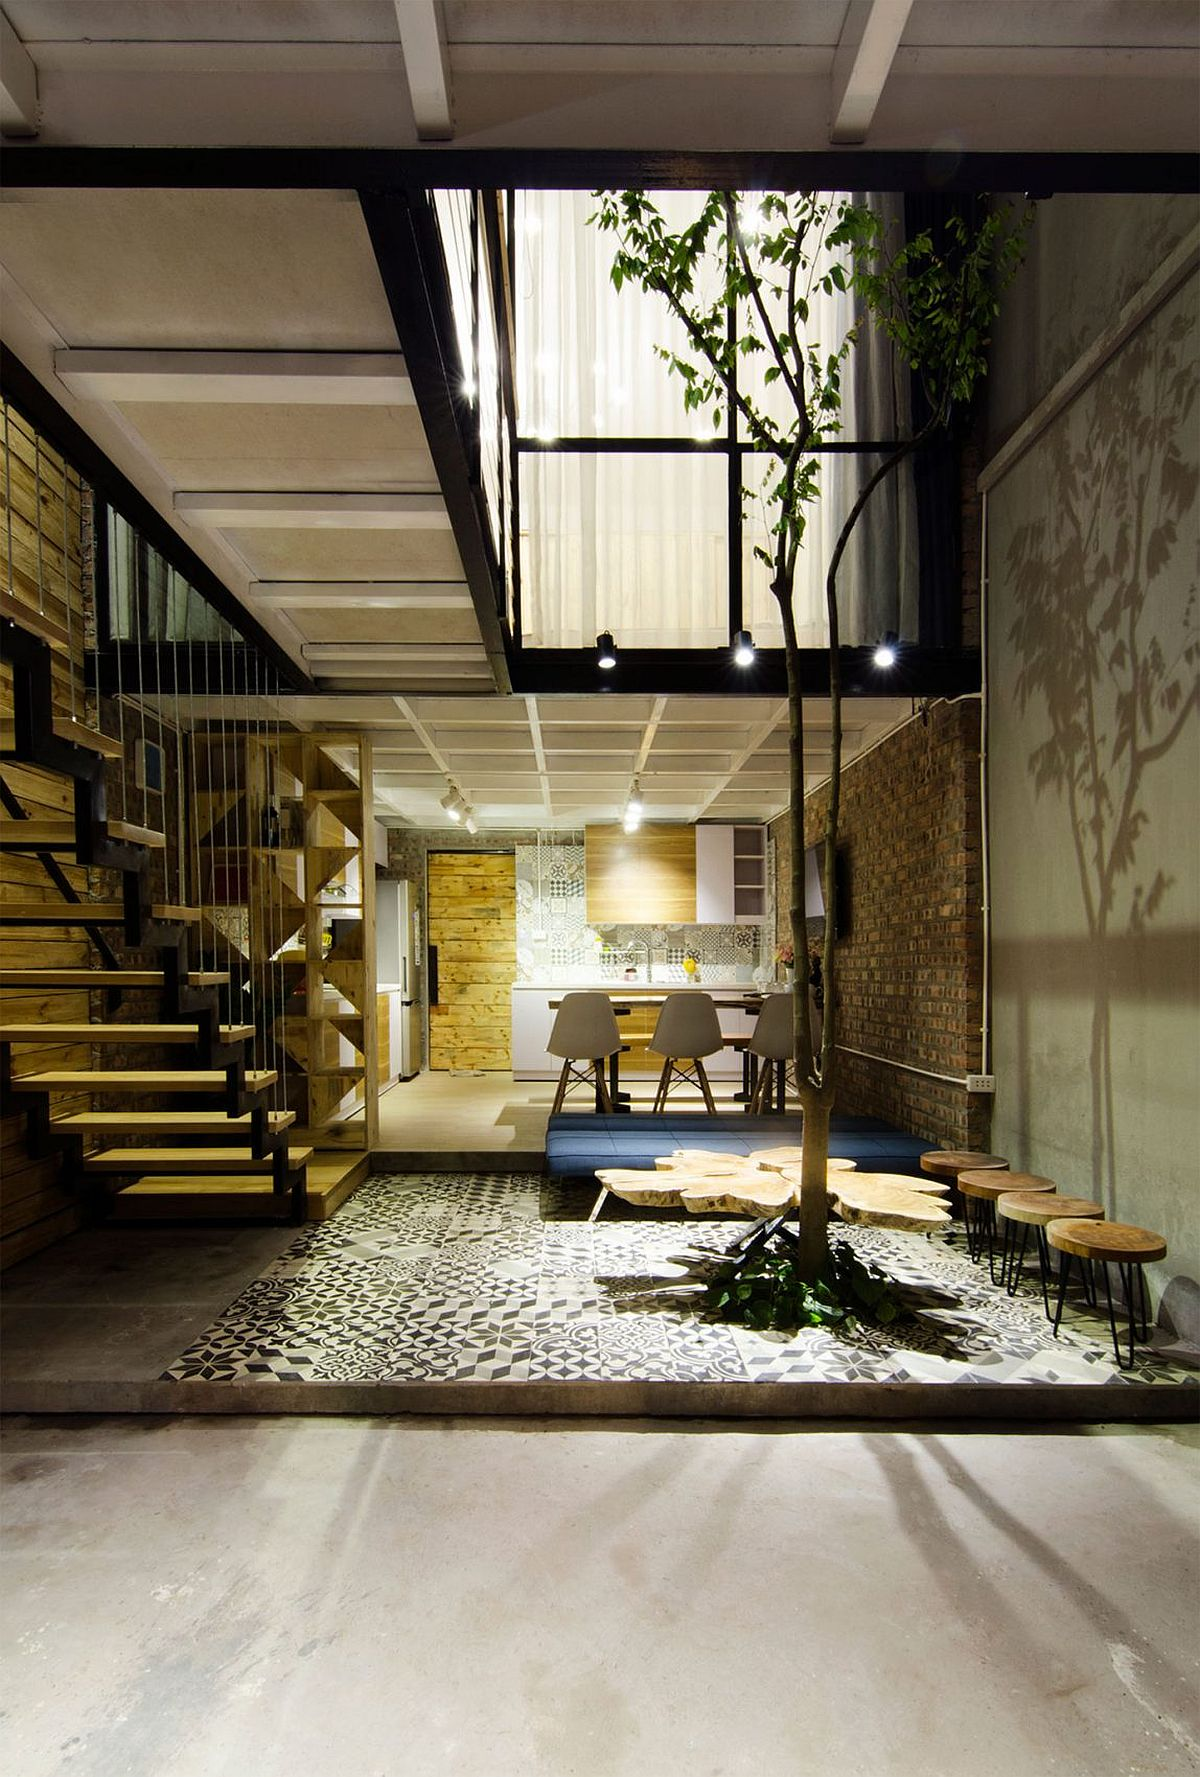 A's House Project by Global Architects & Associates in Hanoi